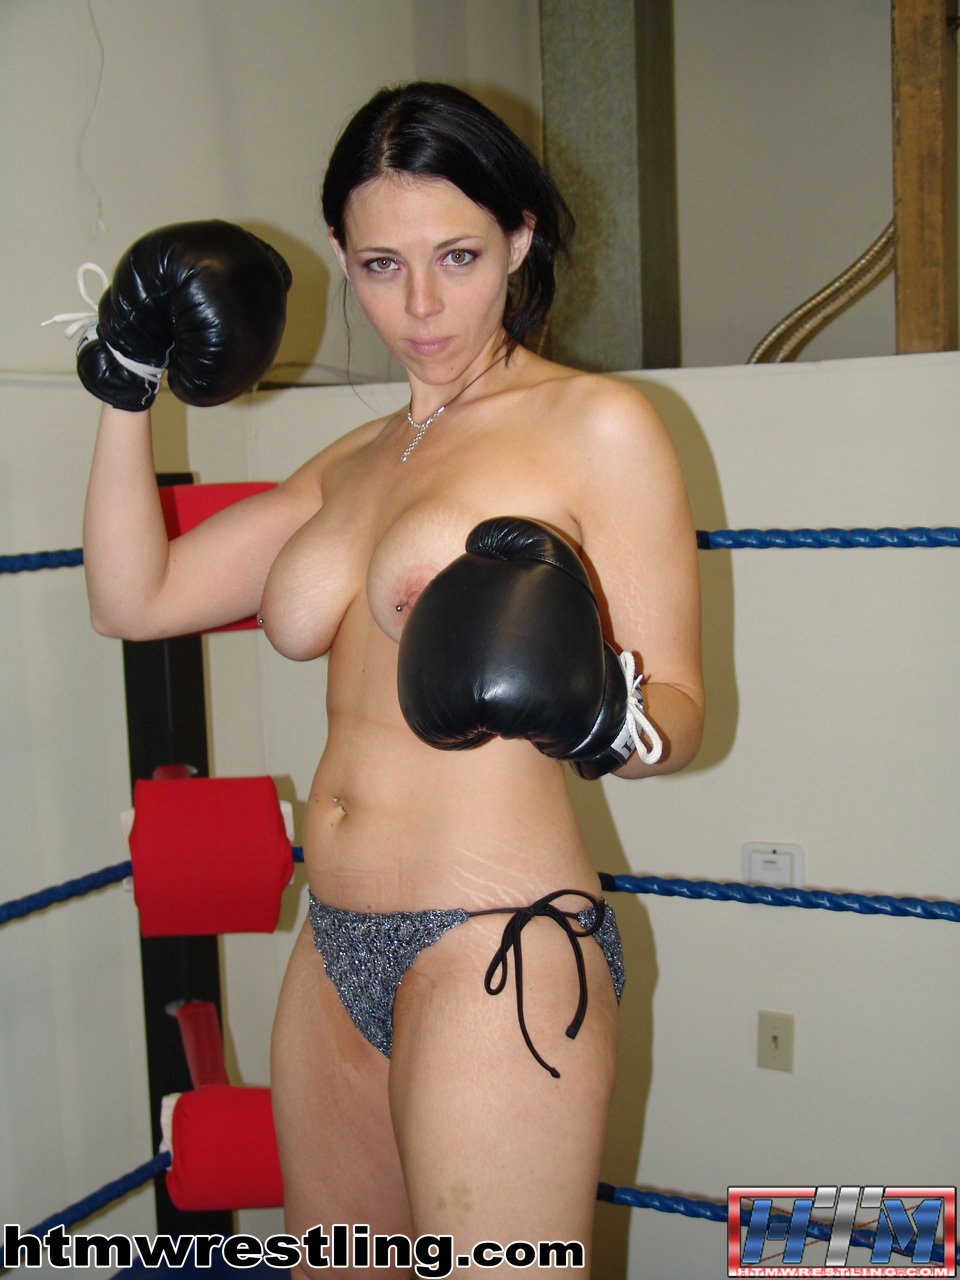 Nude girls women boxing topless answer